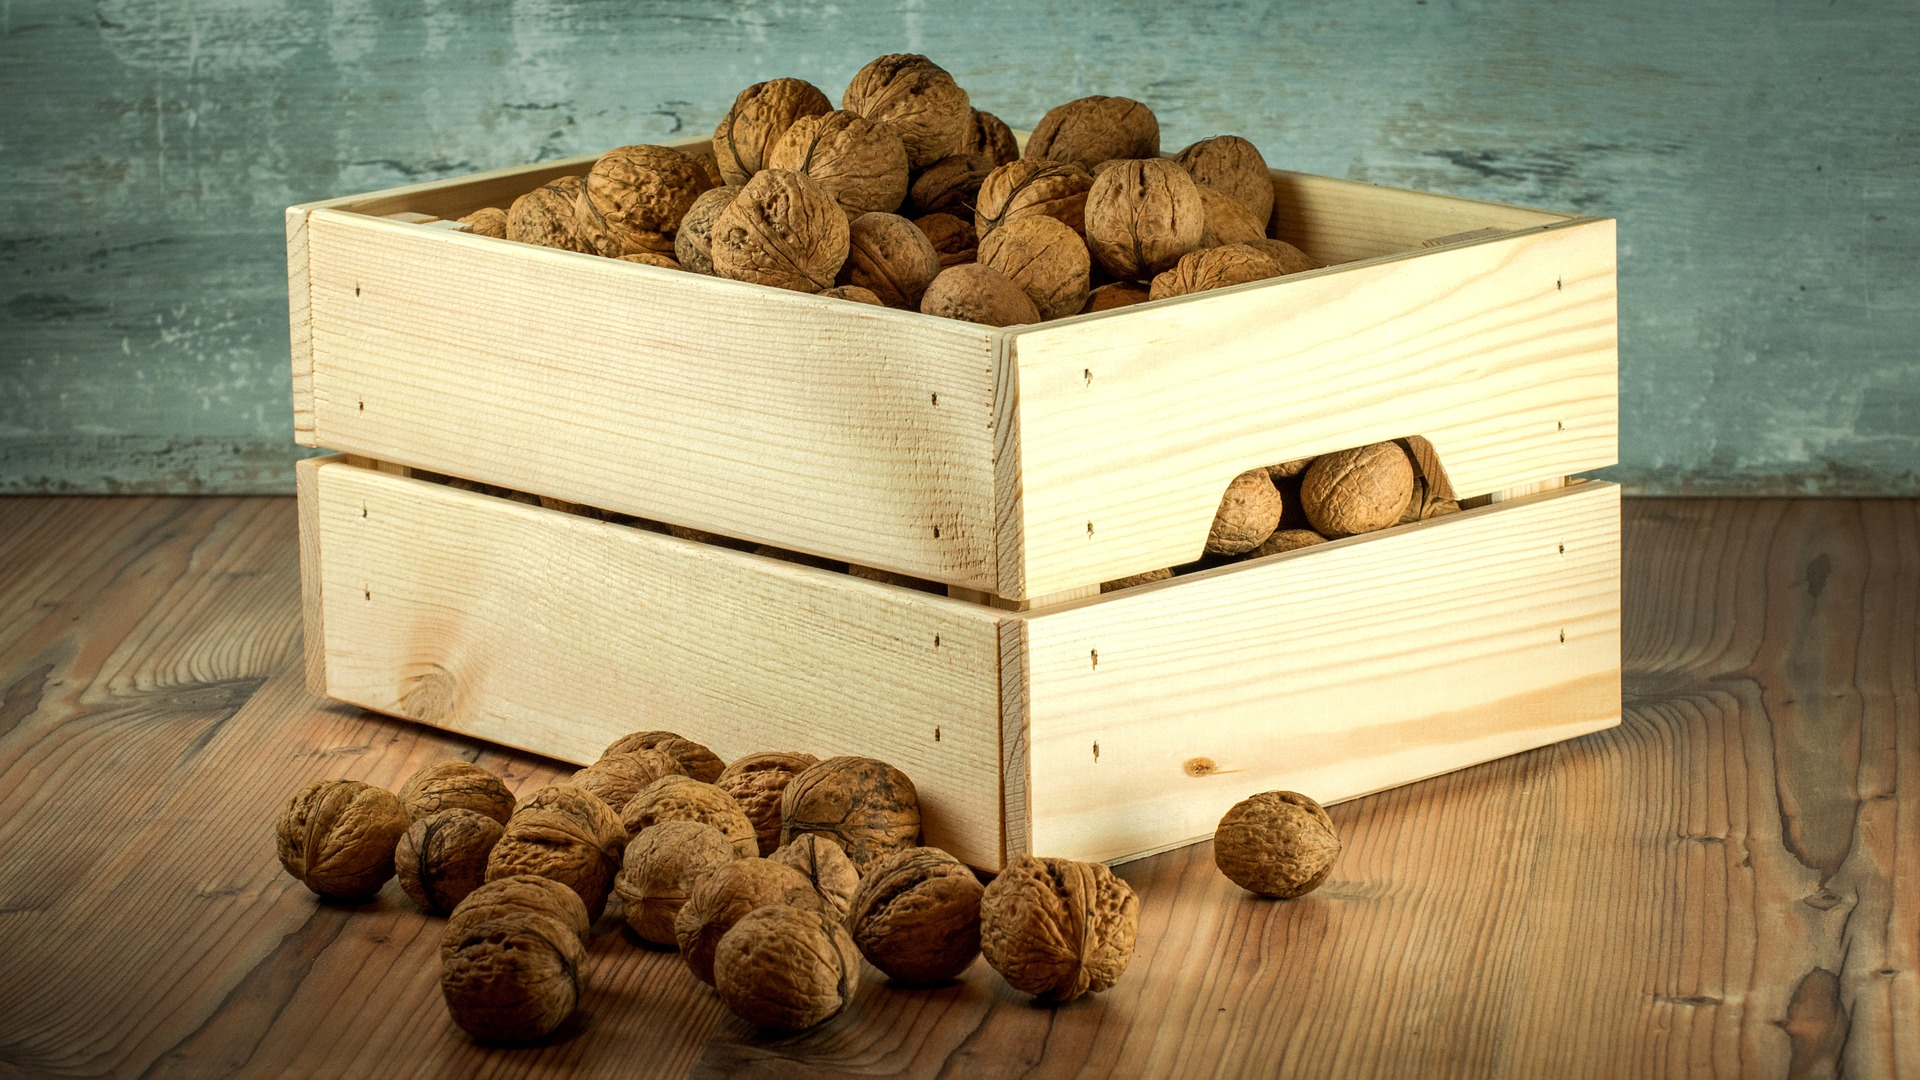 A wooden box full of nuts